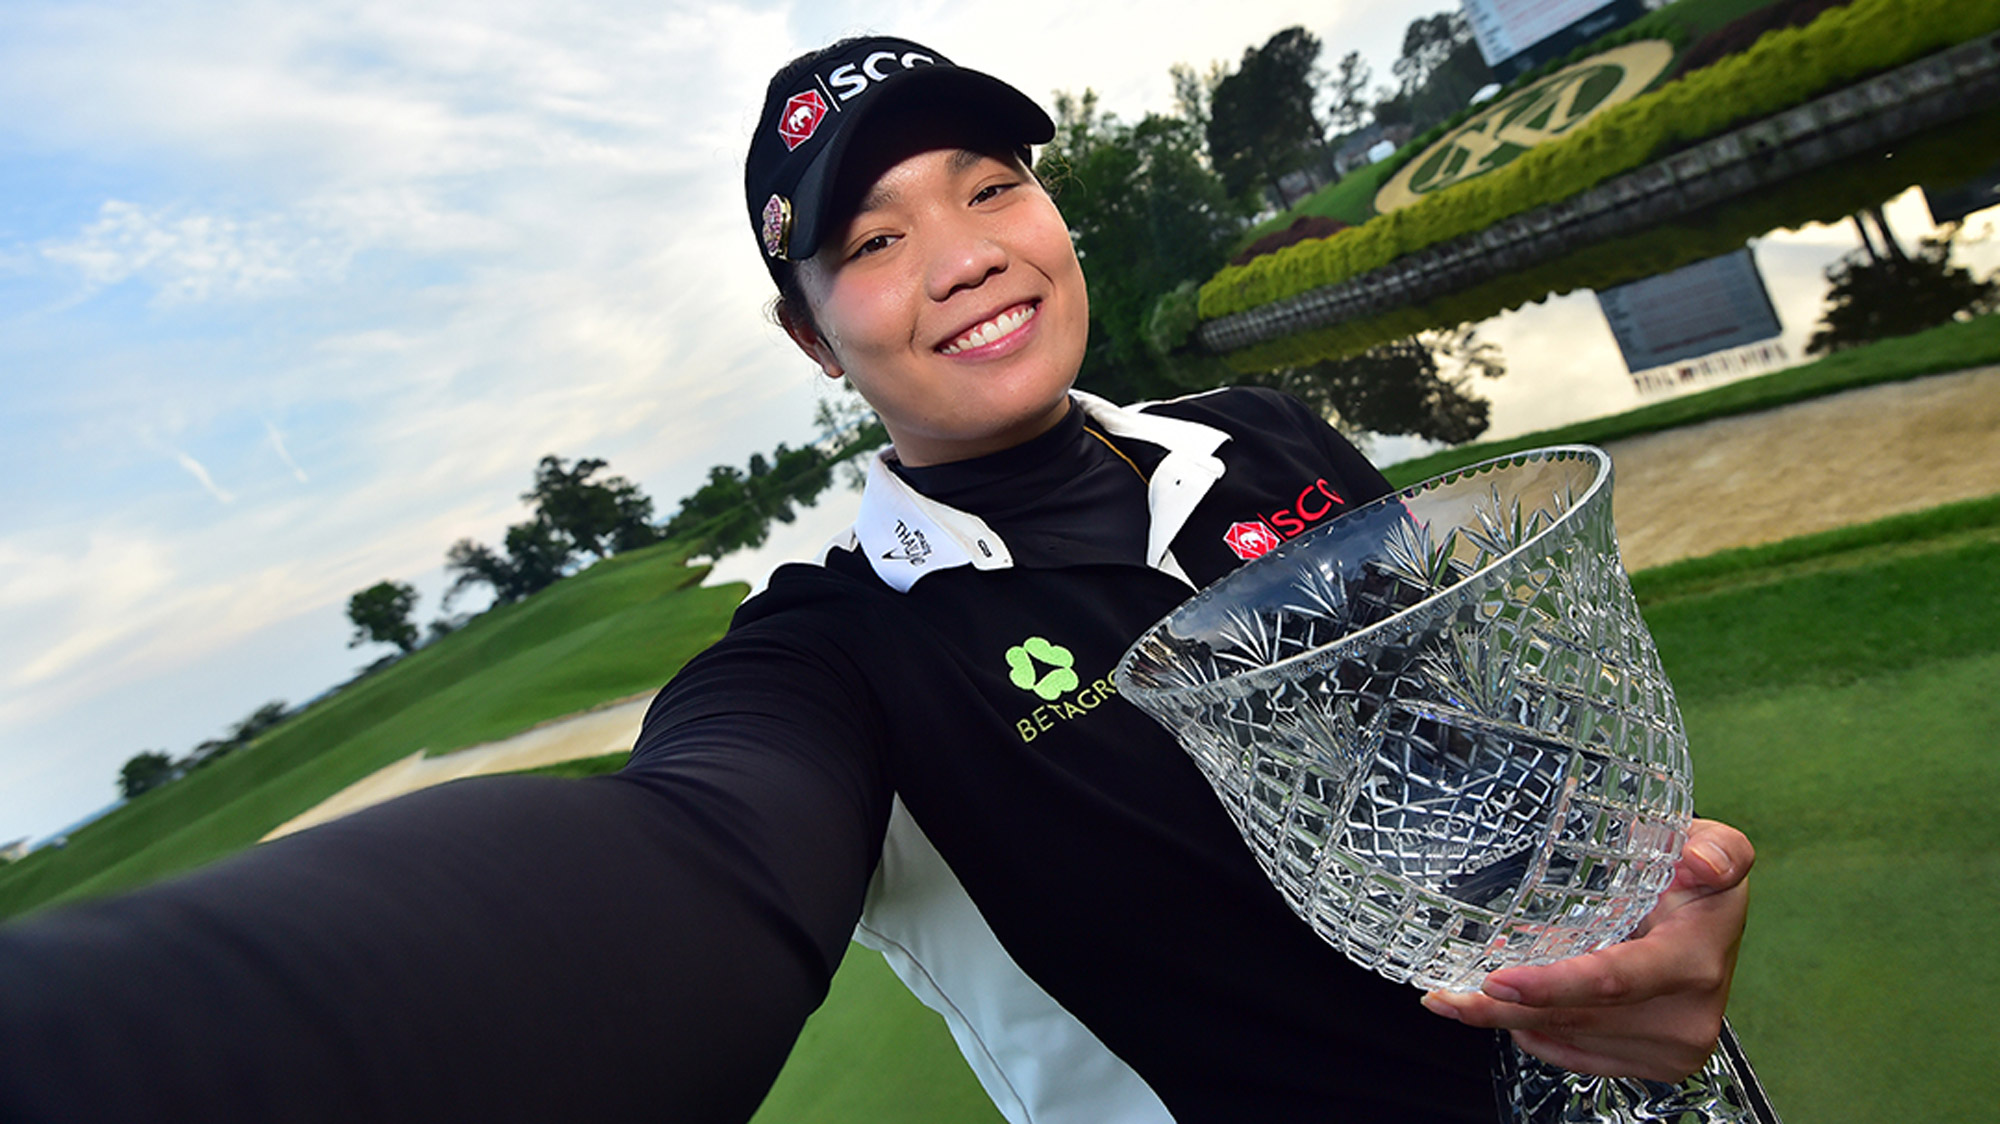 Ariya Jutanugarn Takes a Selfie with the Trophy